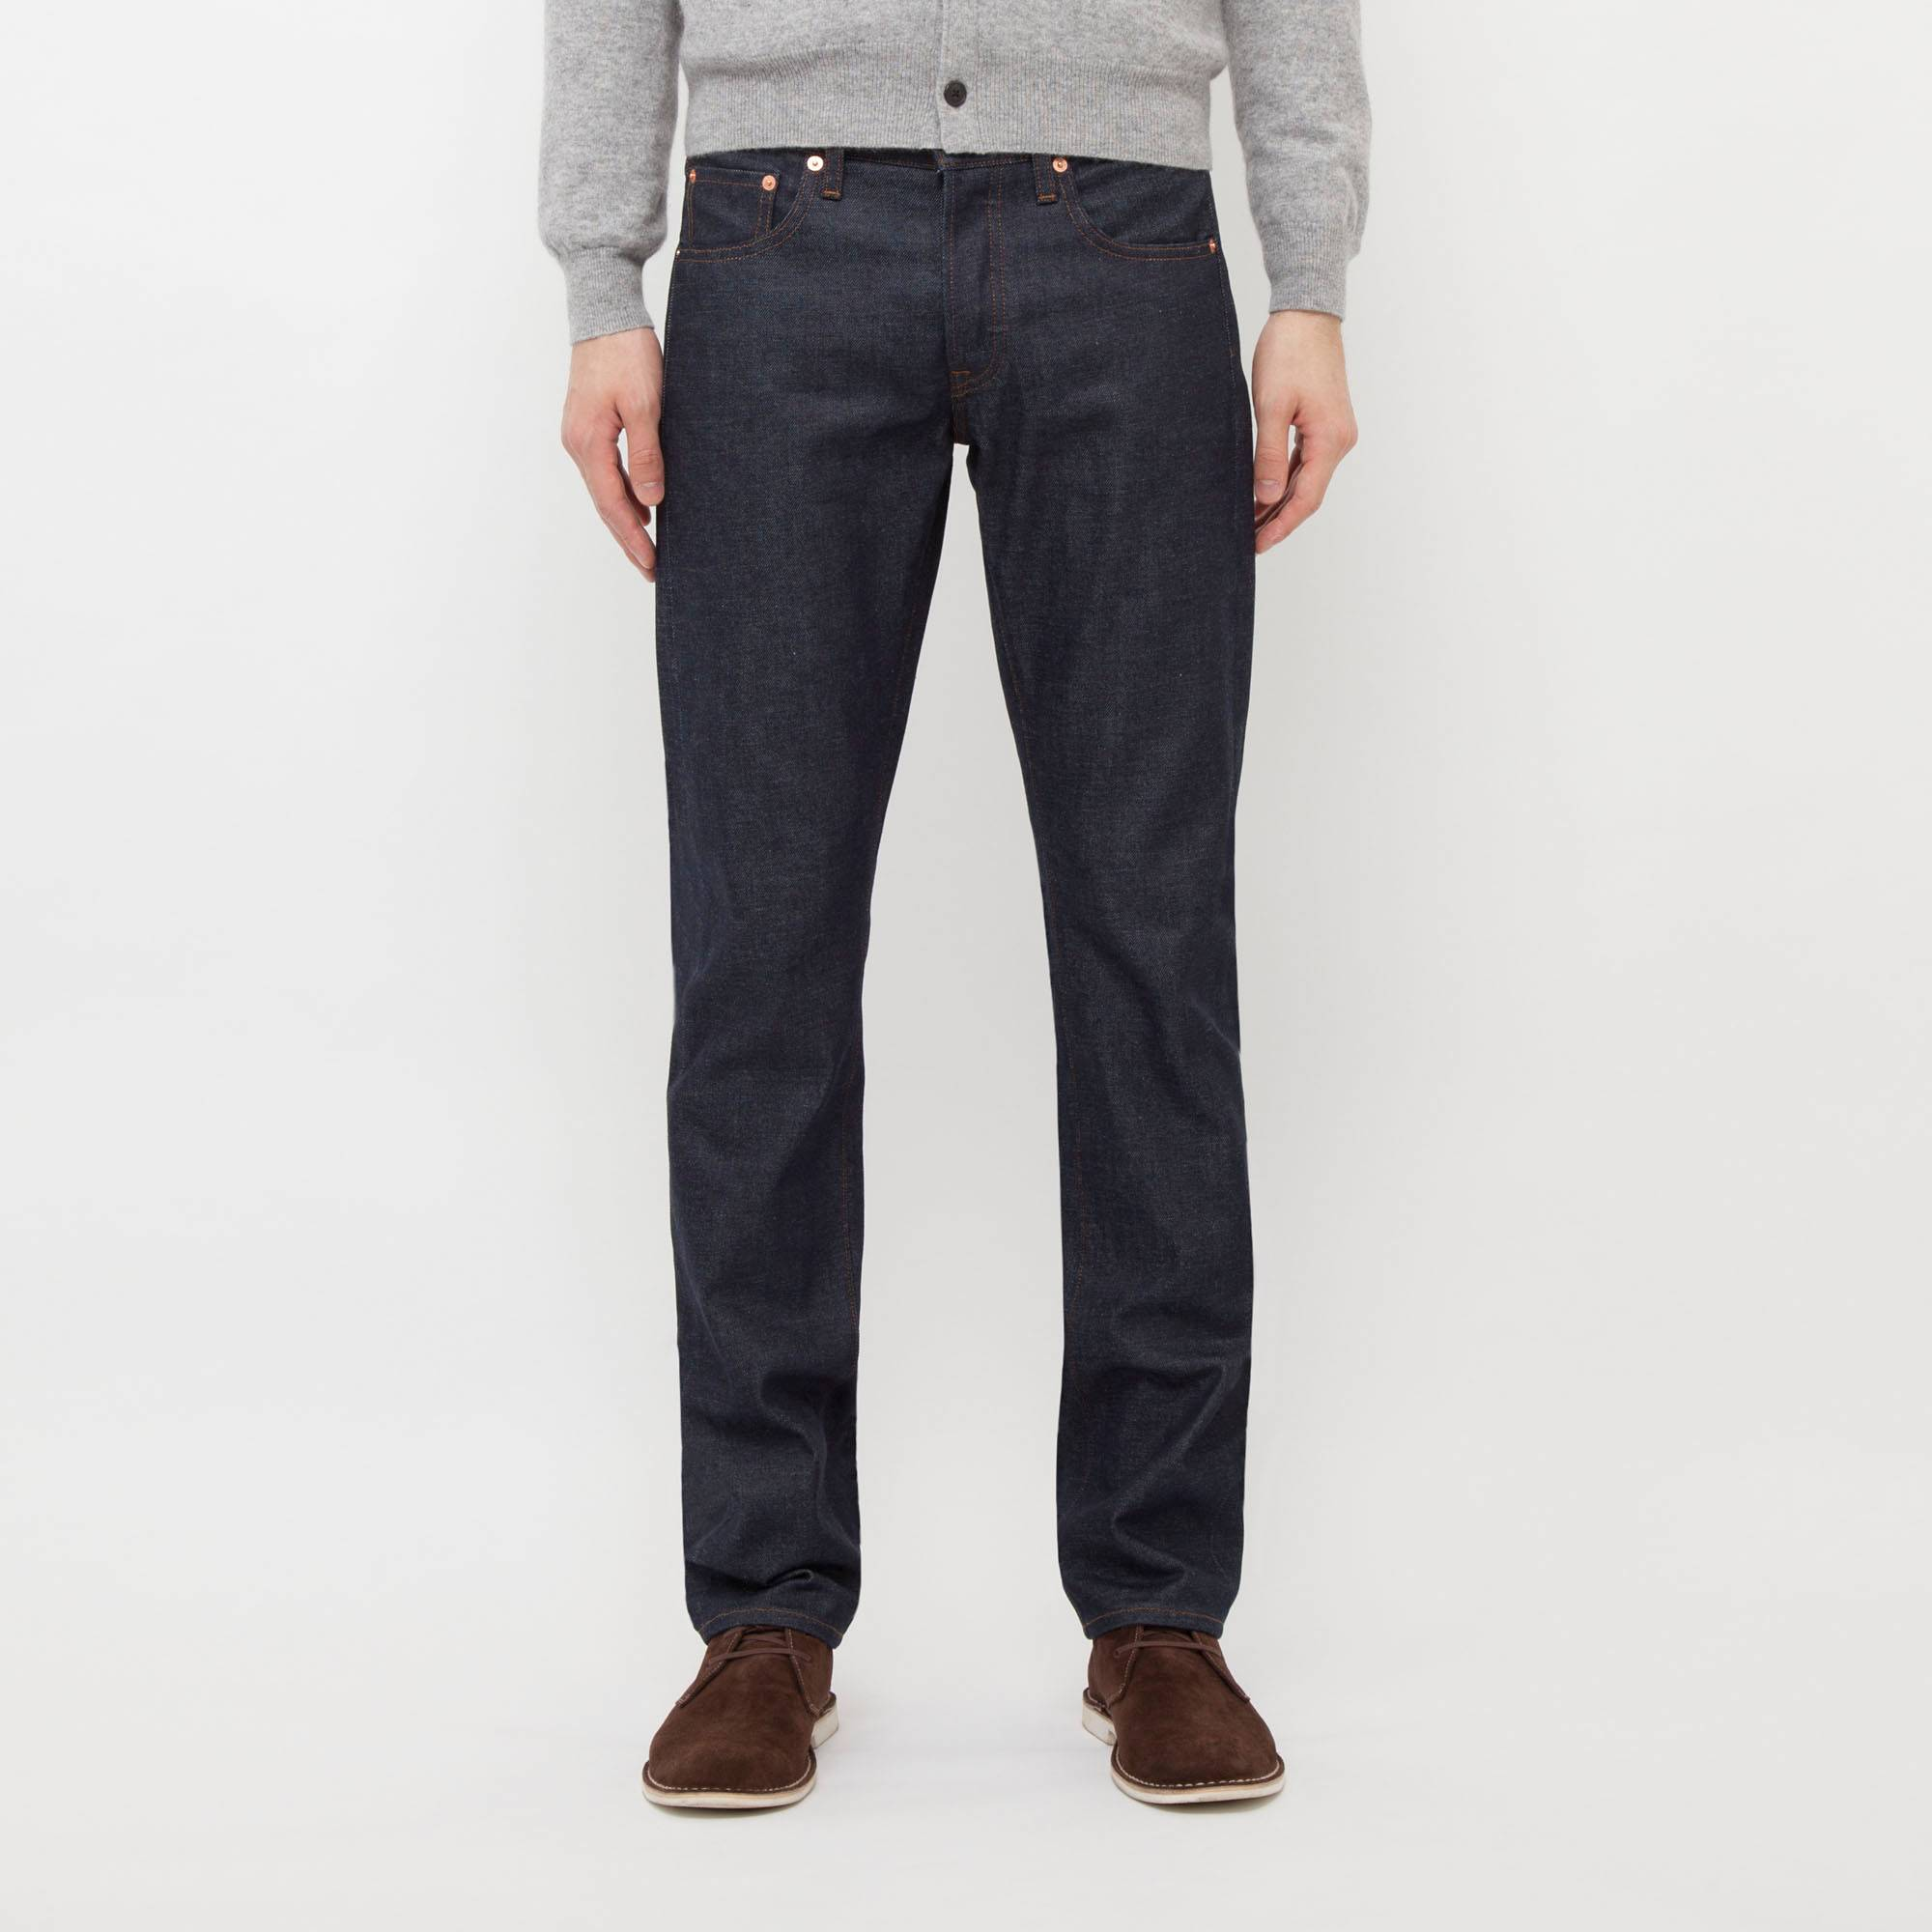 Uniqlo skinny straight jeans